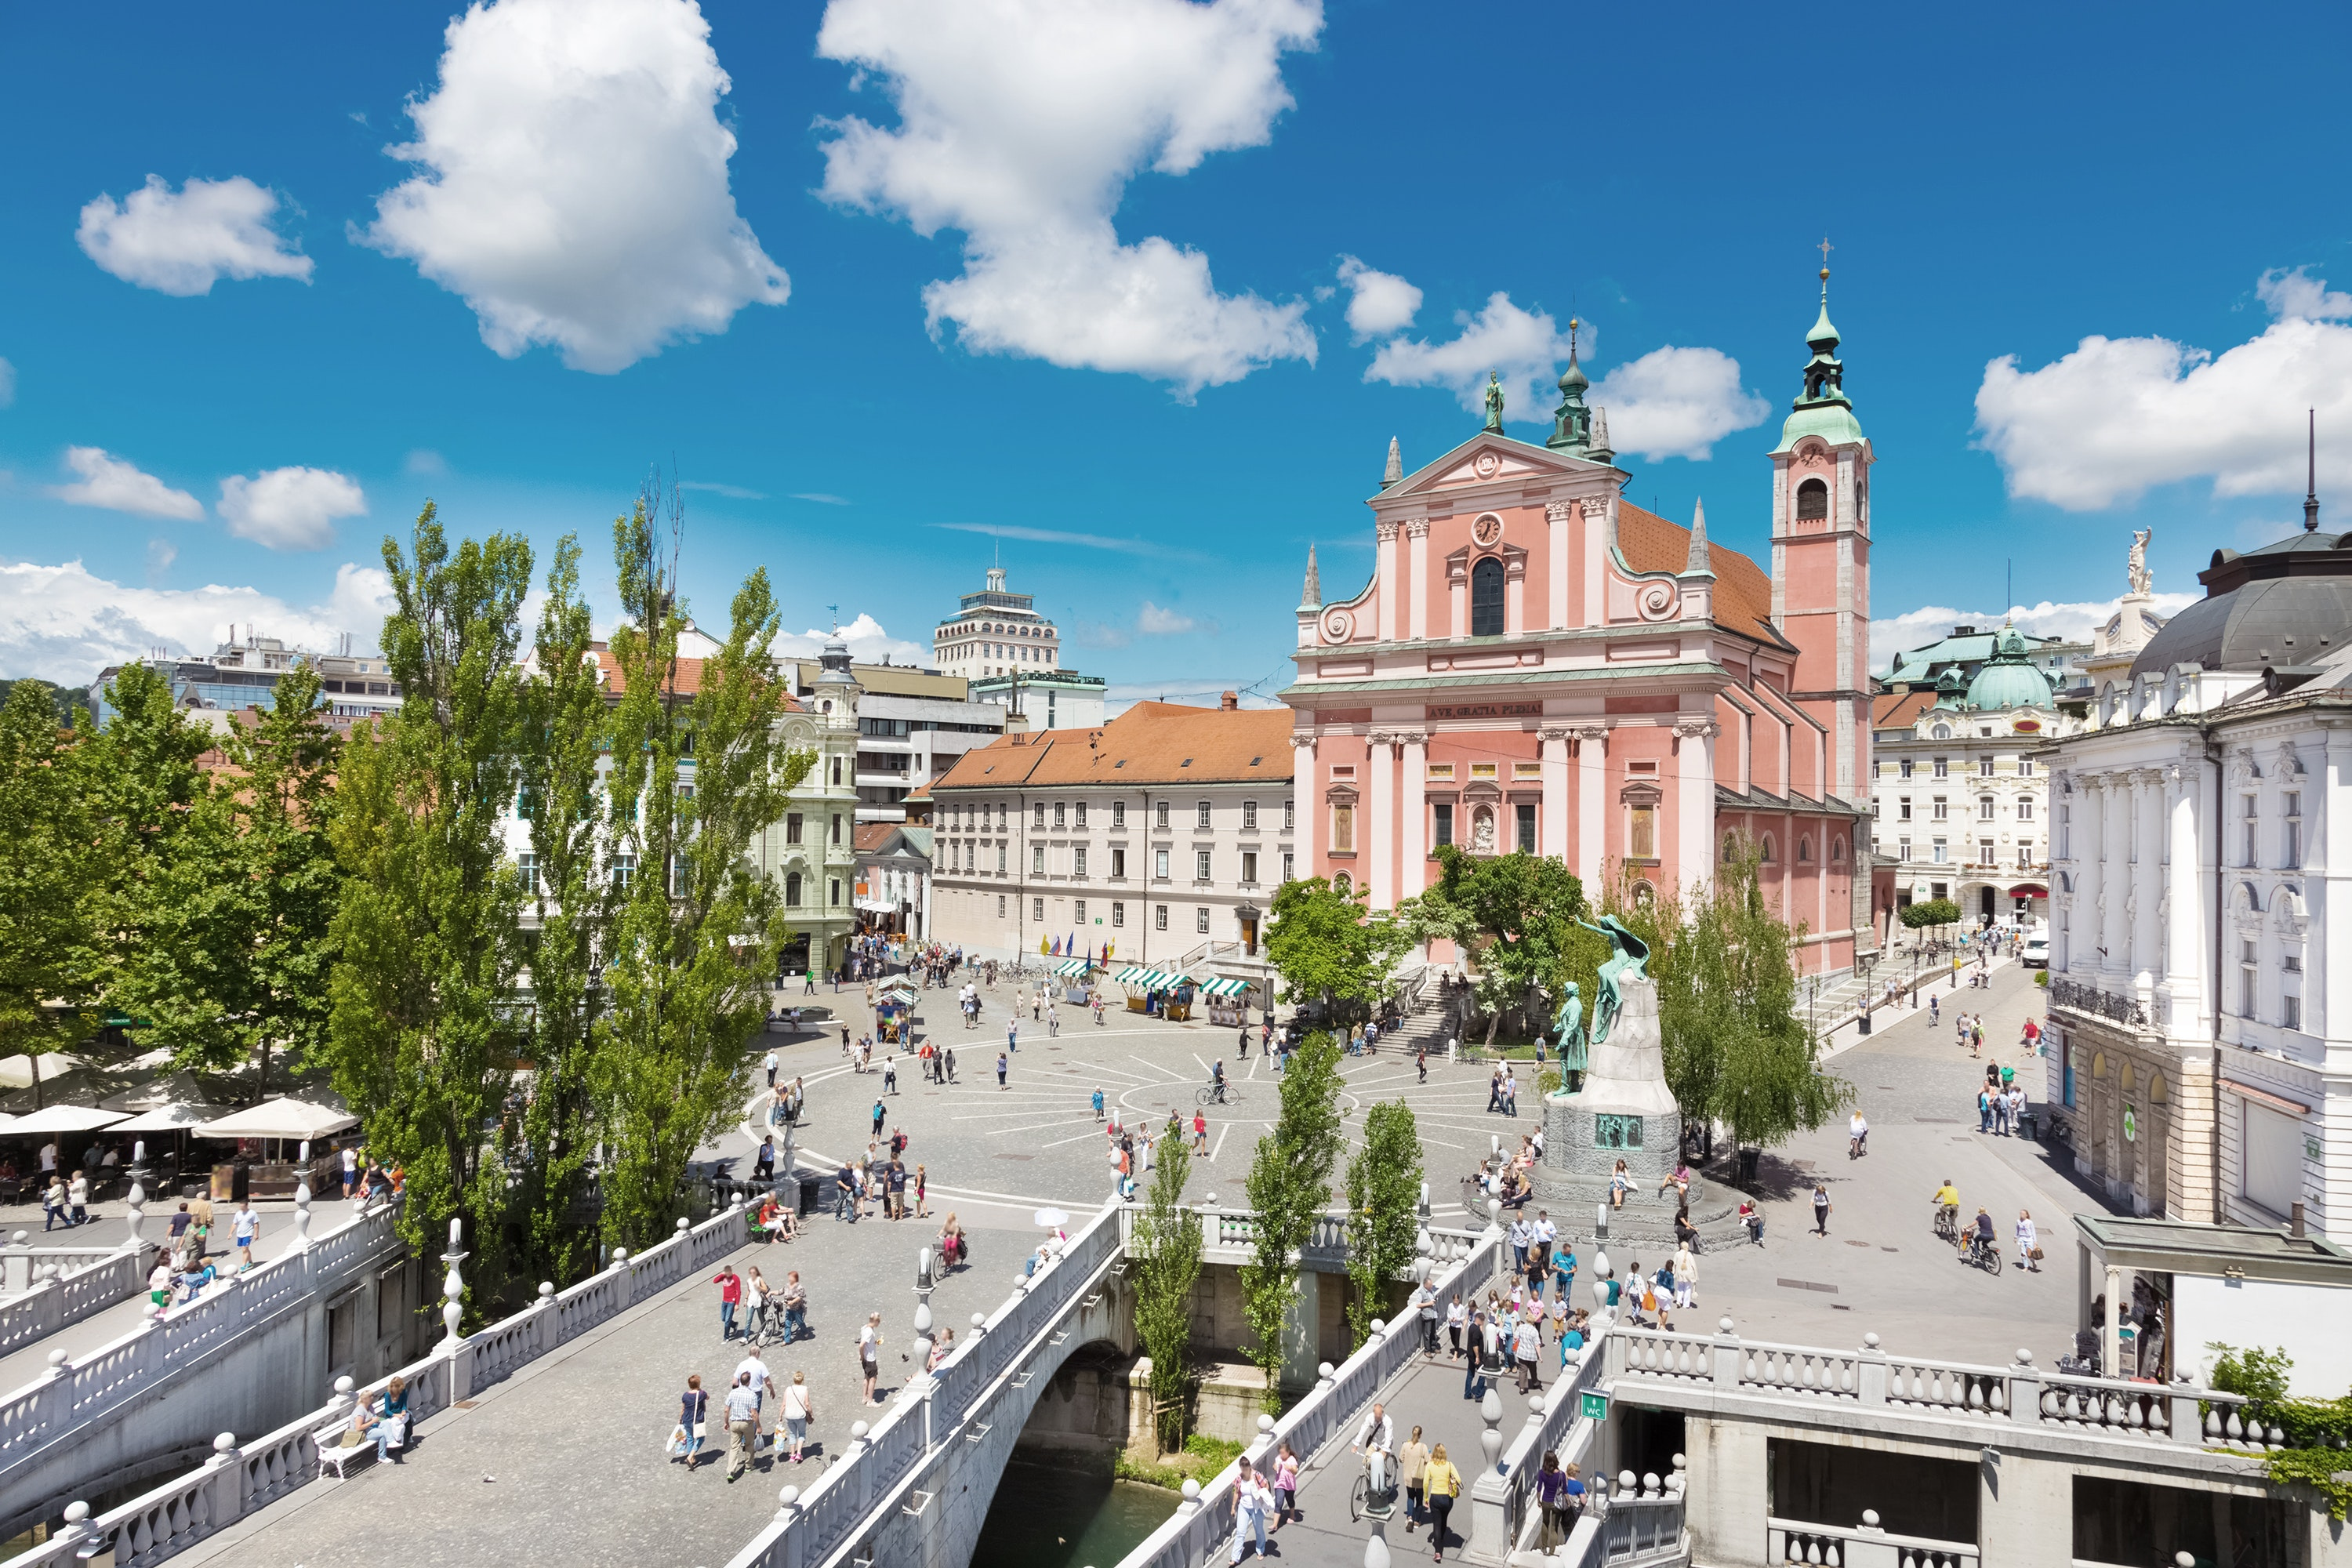 The Slovenian capital of Ljubljana showcases a mix of medieval and modern architectural styles and a thriving art scene.